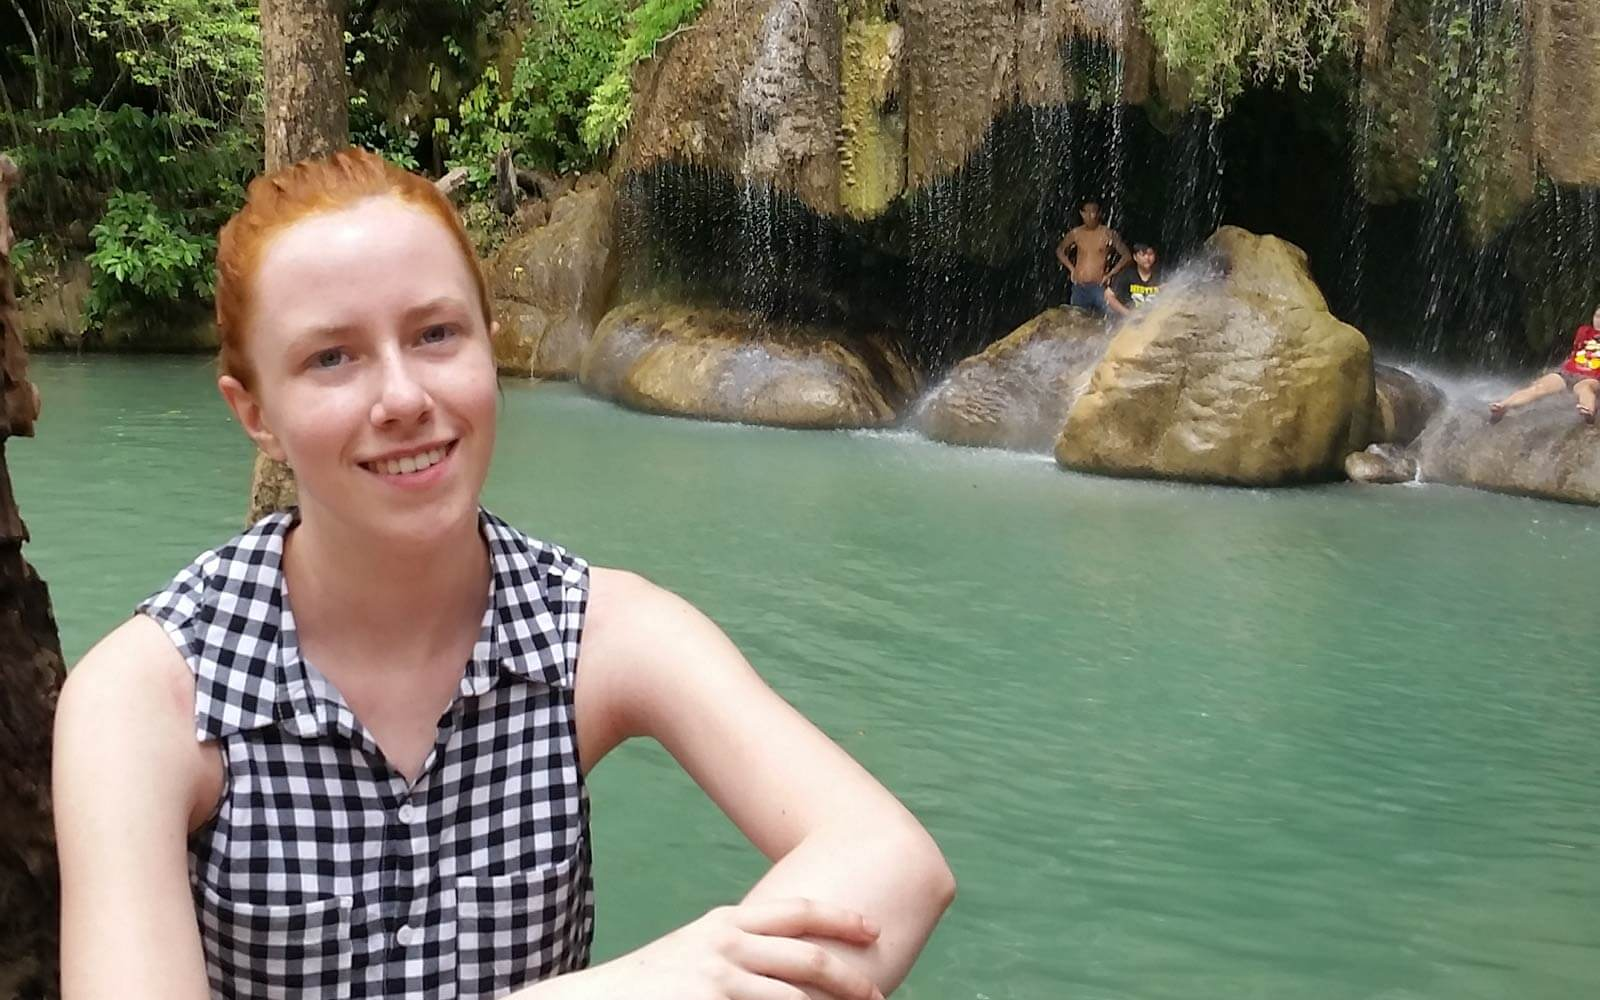 Verena am Wasserfall in Thailand